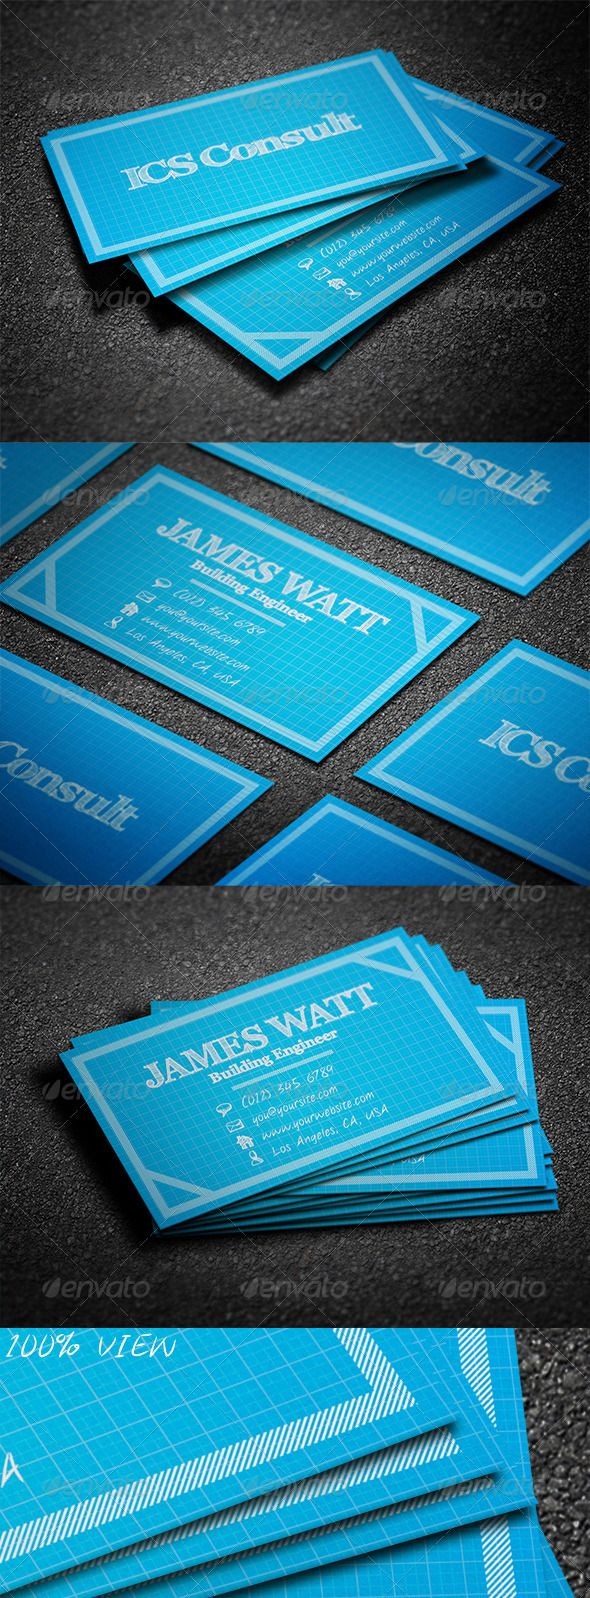 Blueprint business card graphicriver created 4december12 blueprint business card graphicriver created 4december12 graphicsfilesincluded photoshoppsd jpgimage layered yes malvernweather Gallery